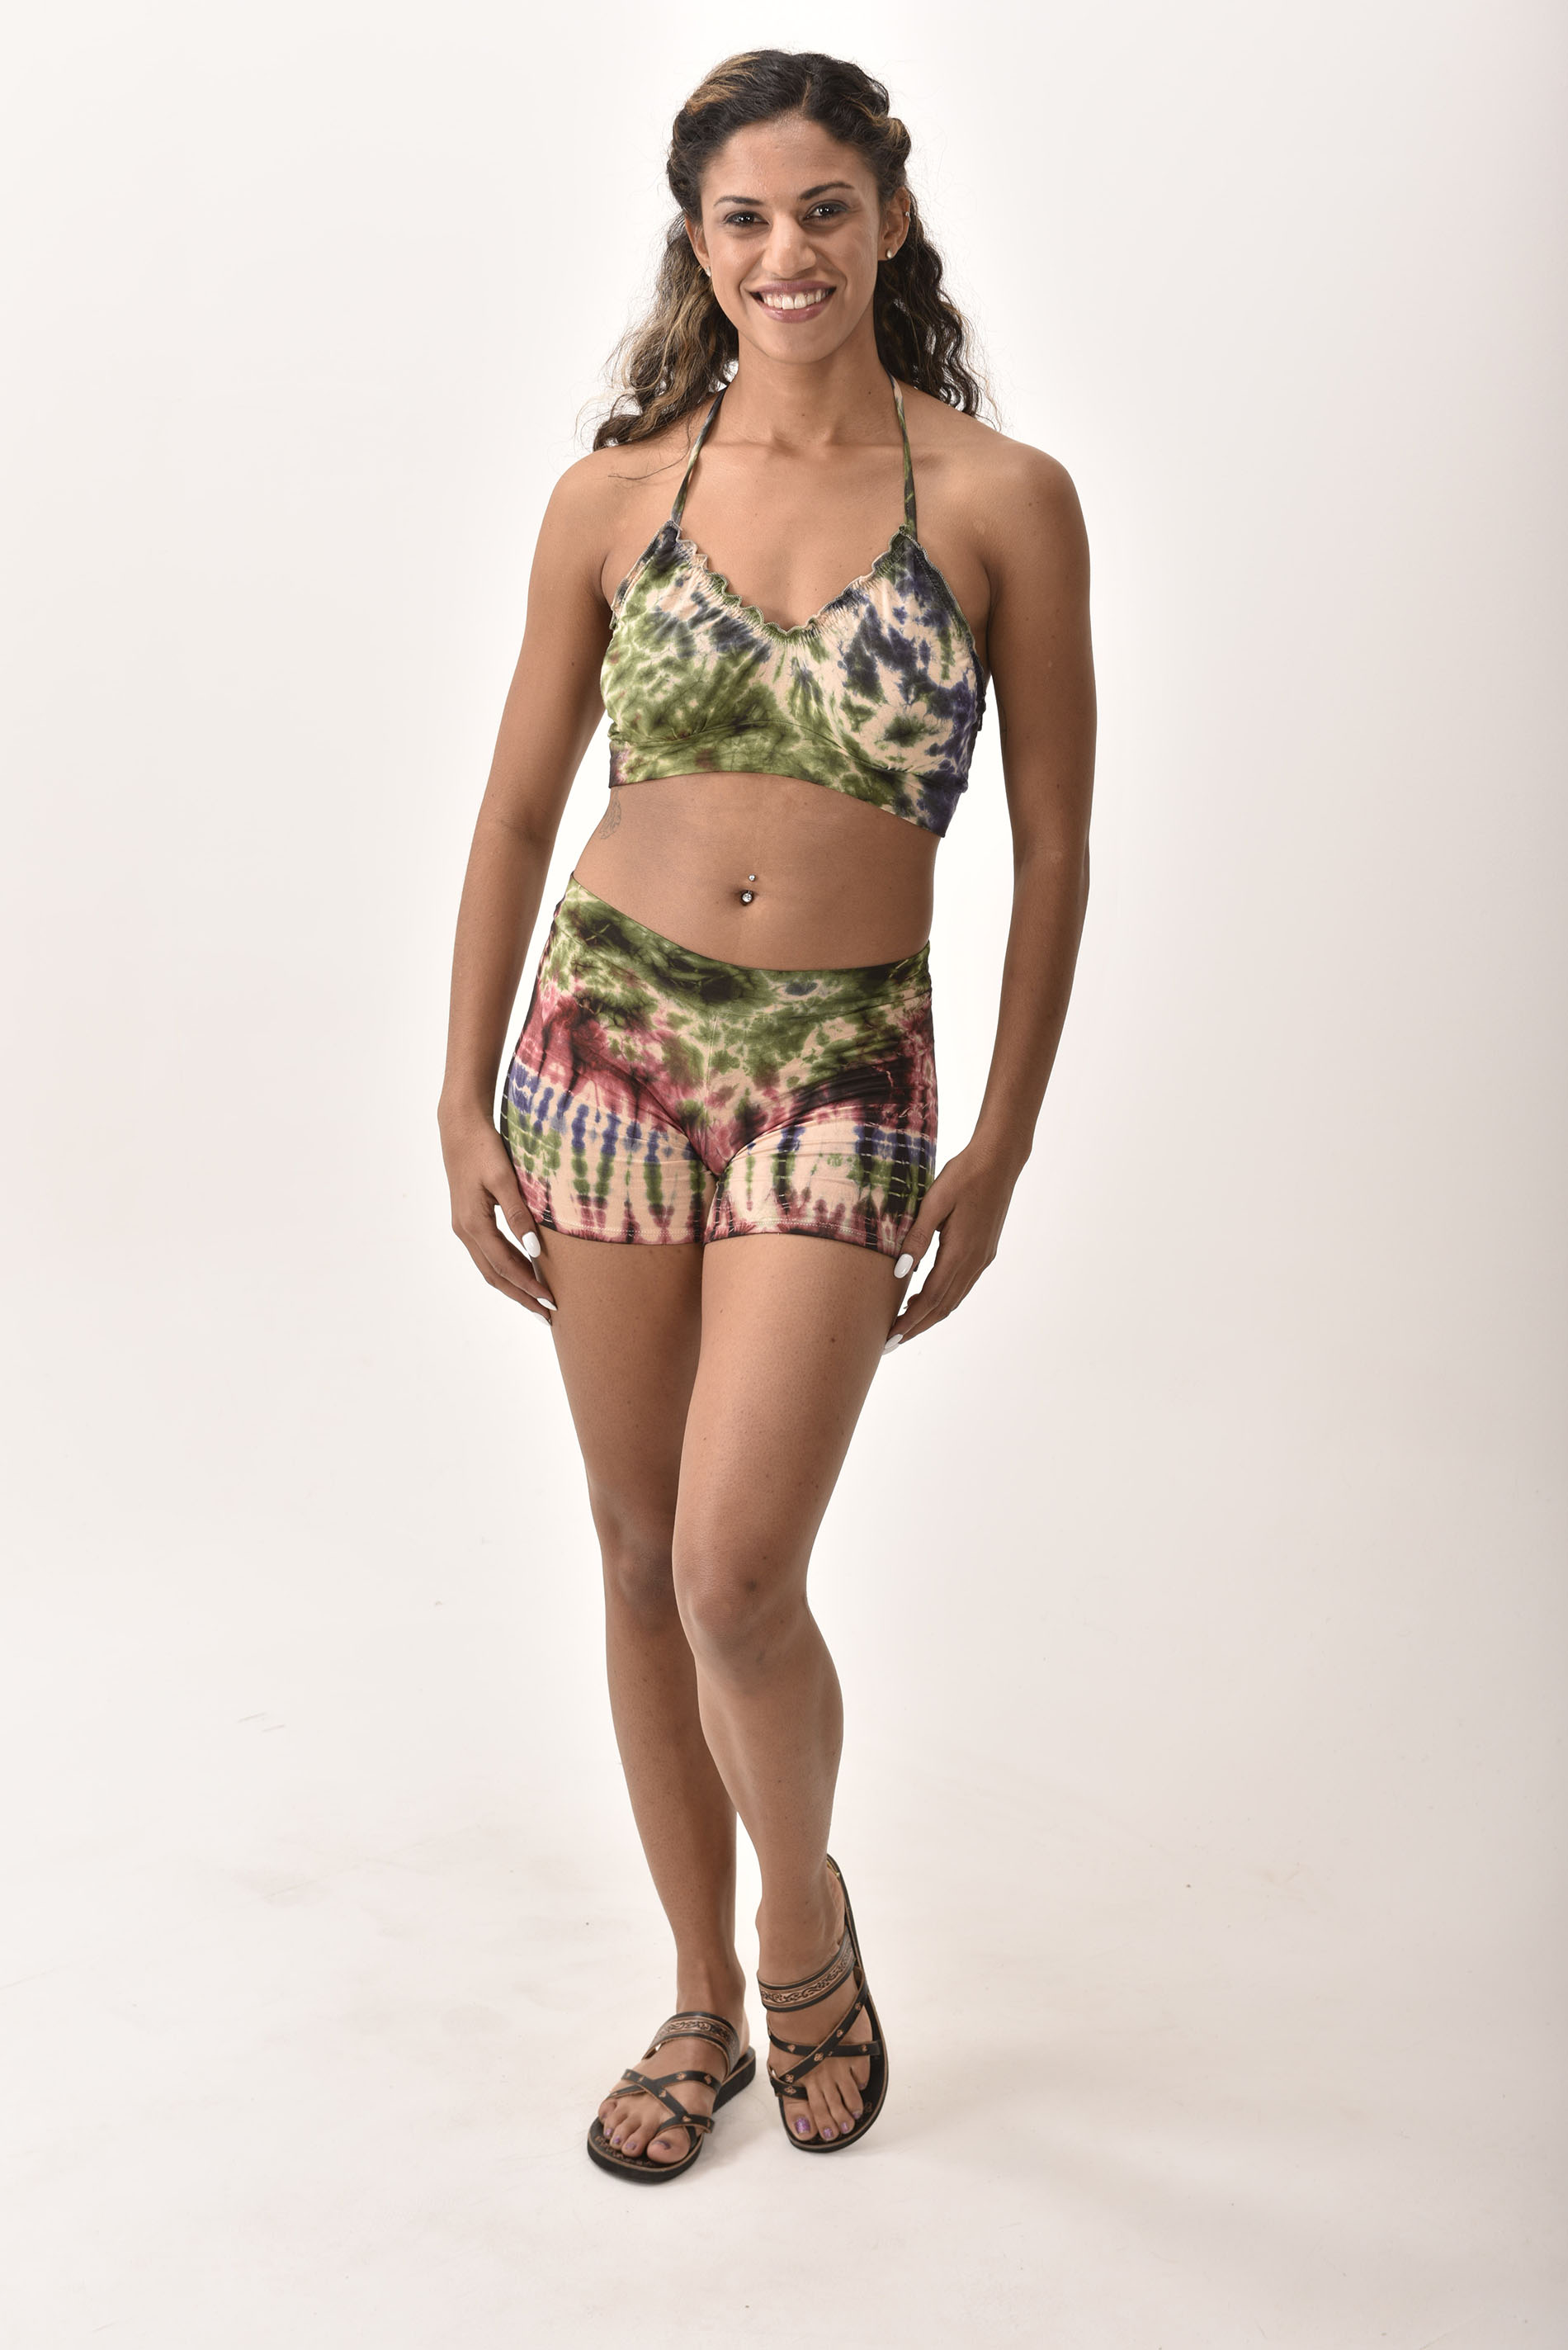 Shorts & Halter - Cool Colors Multi